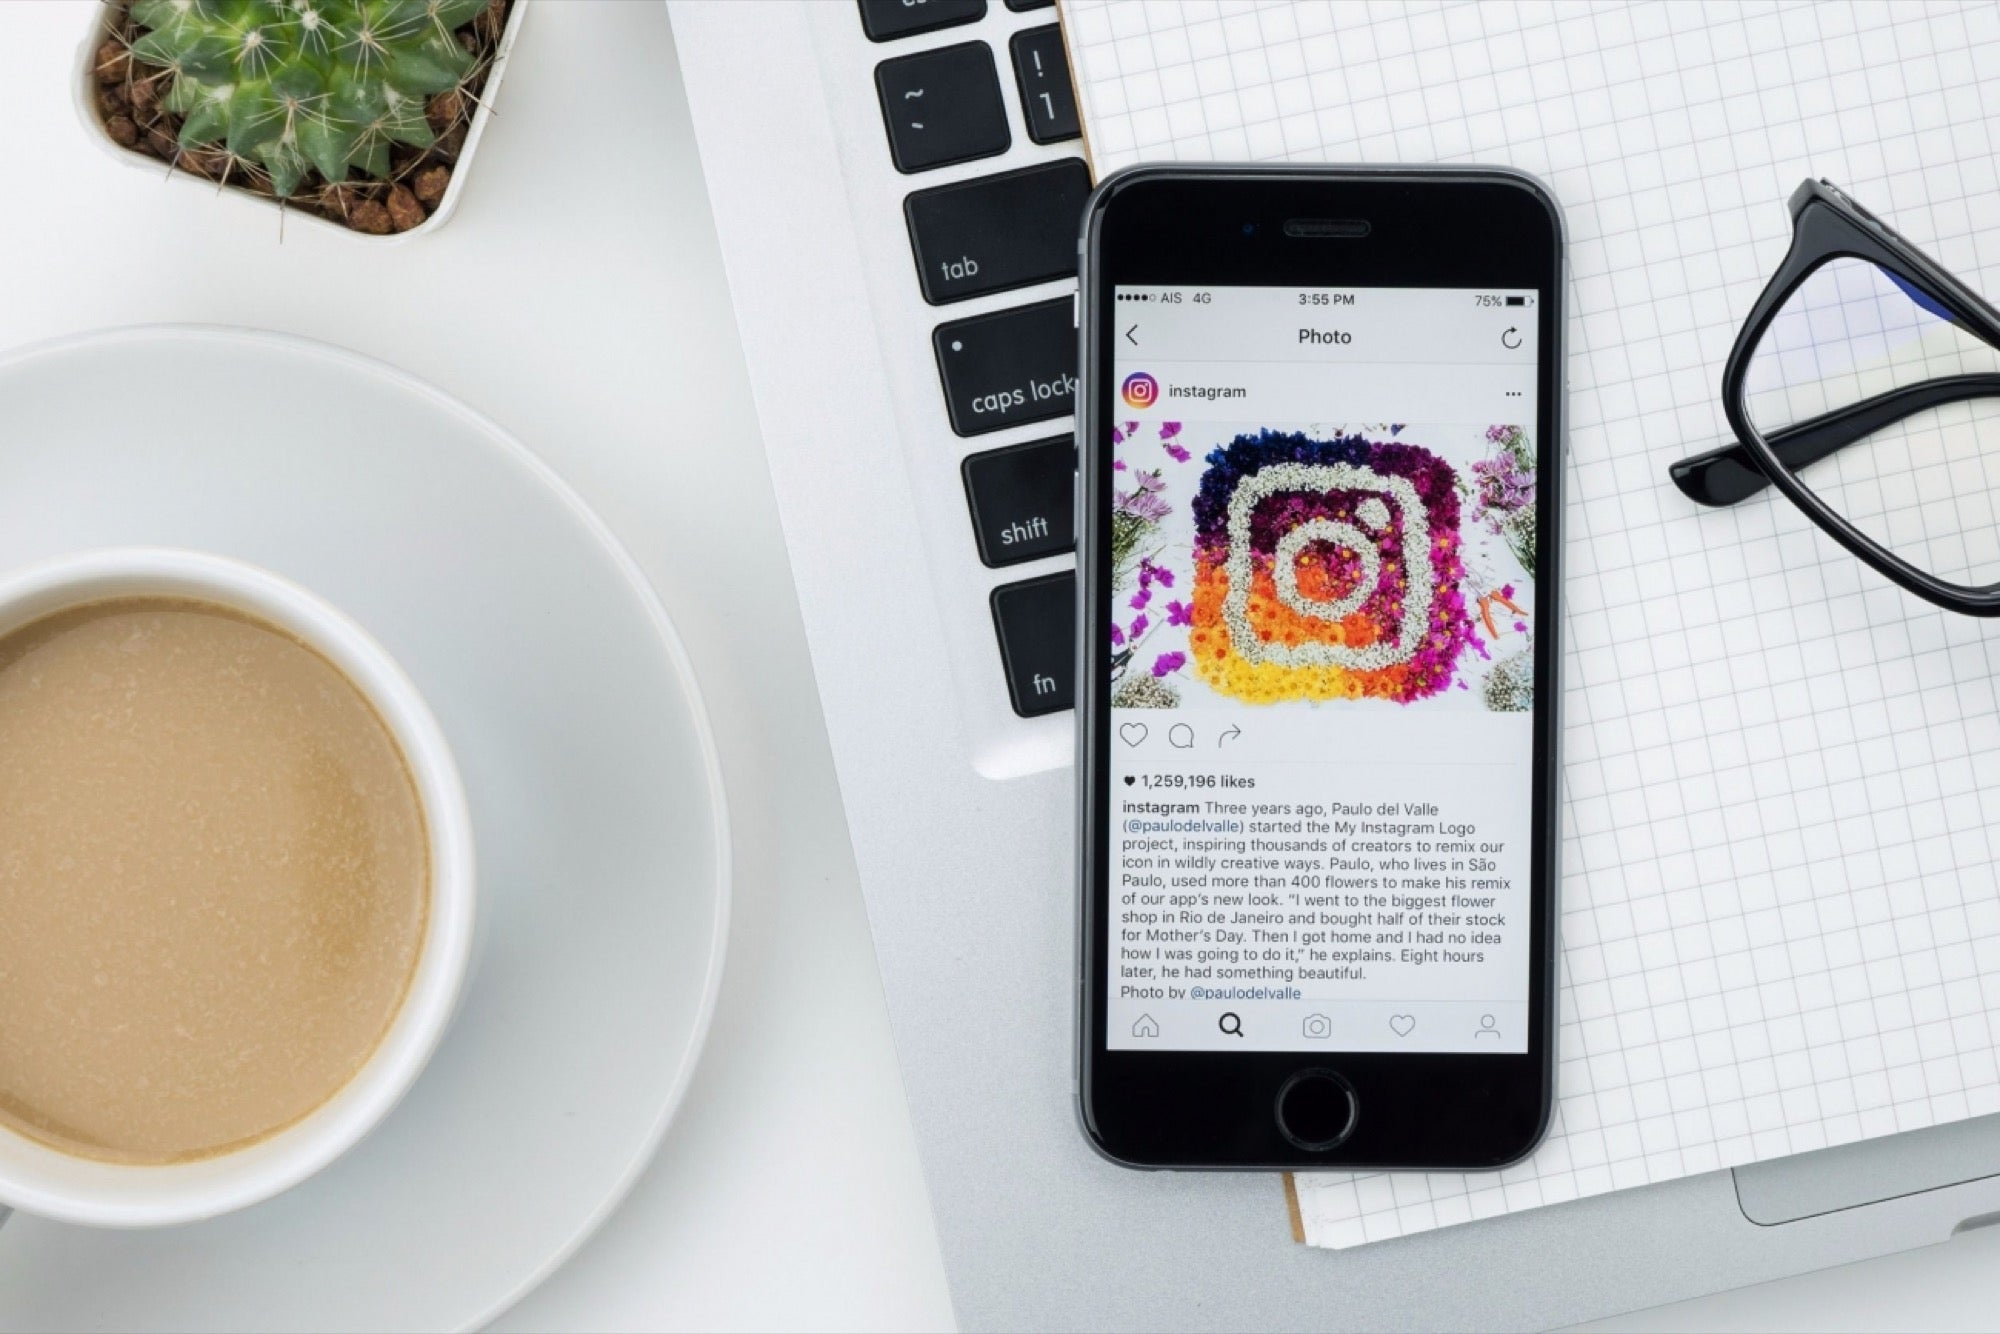 How to Promote the Brand Effectively Through Instagram?